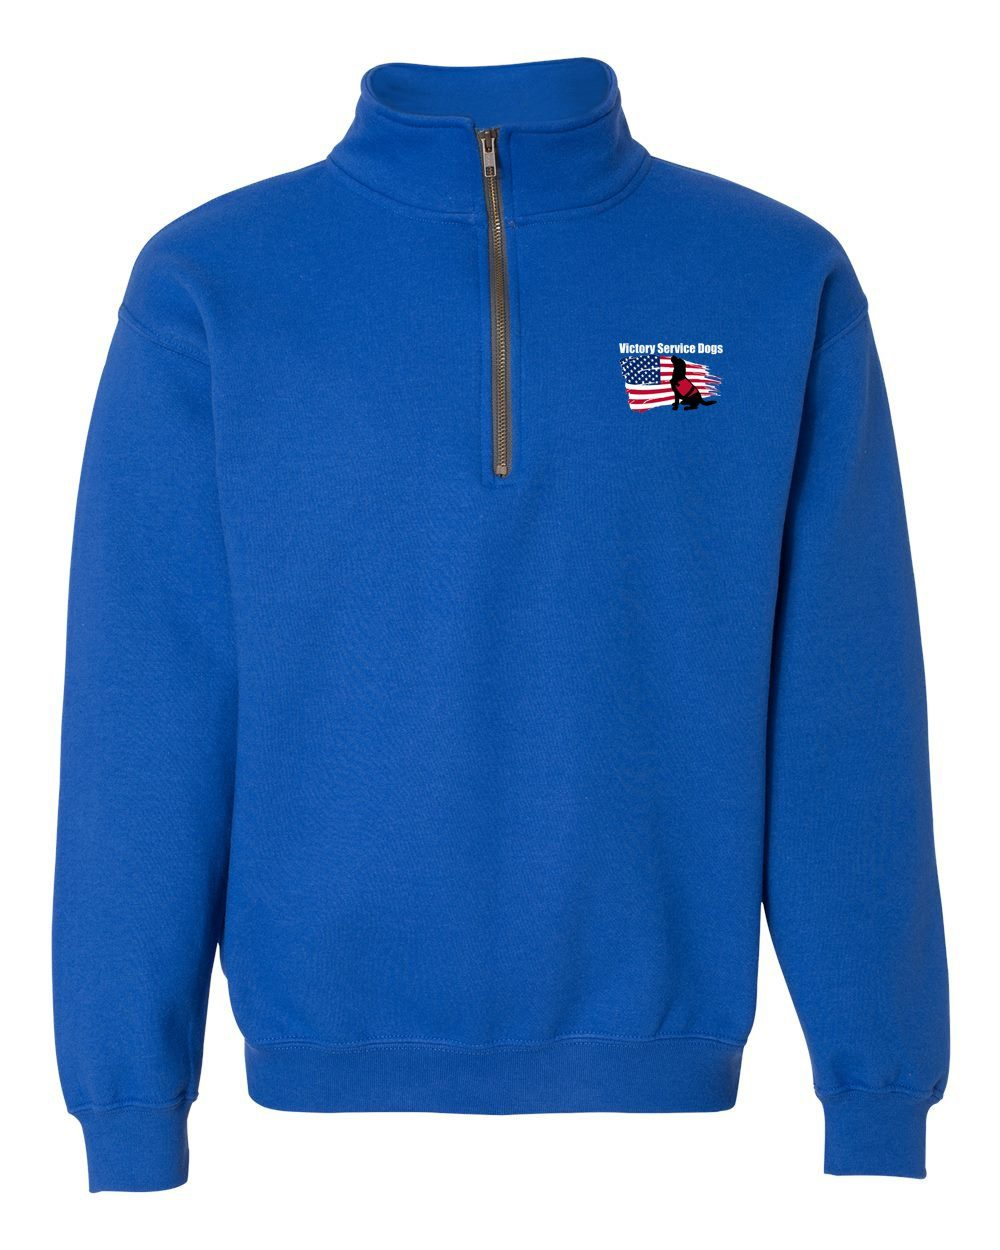 Victory Service Dogs Sweatshirt